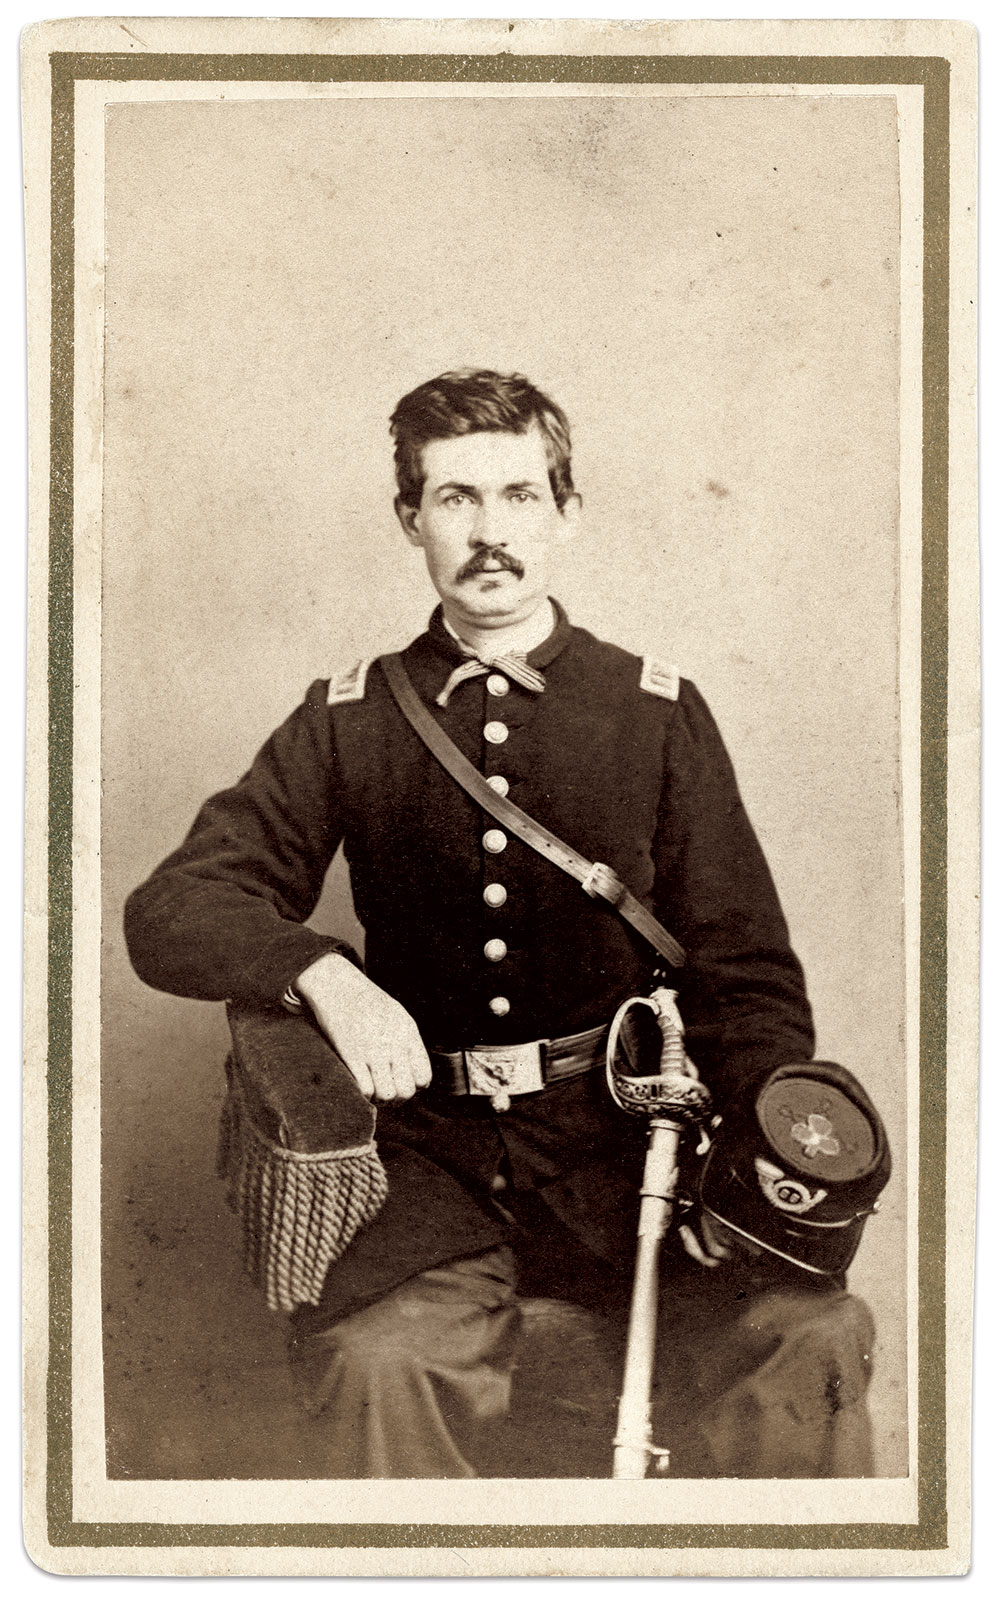 Carte de visite by R.A. Lord of New York City. Charles Joyce Collection.